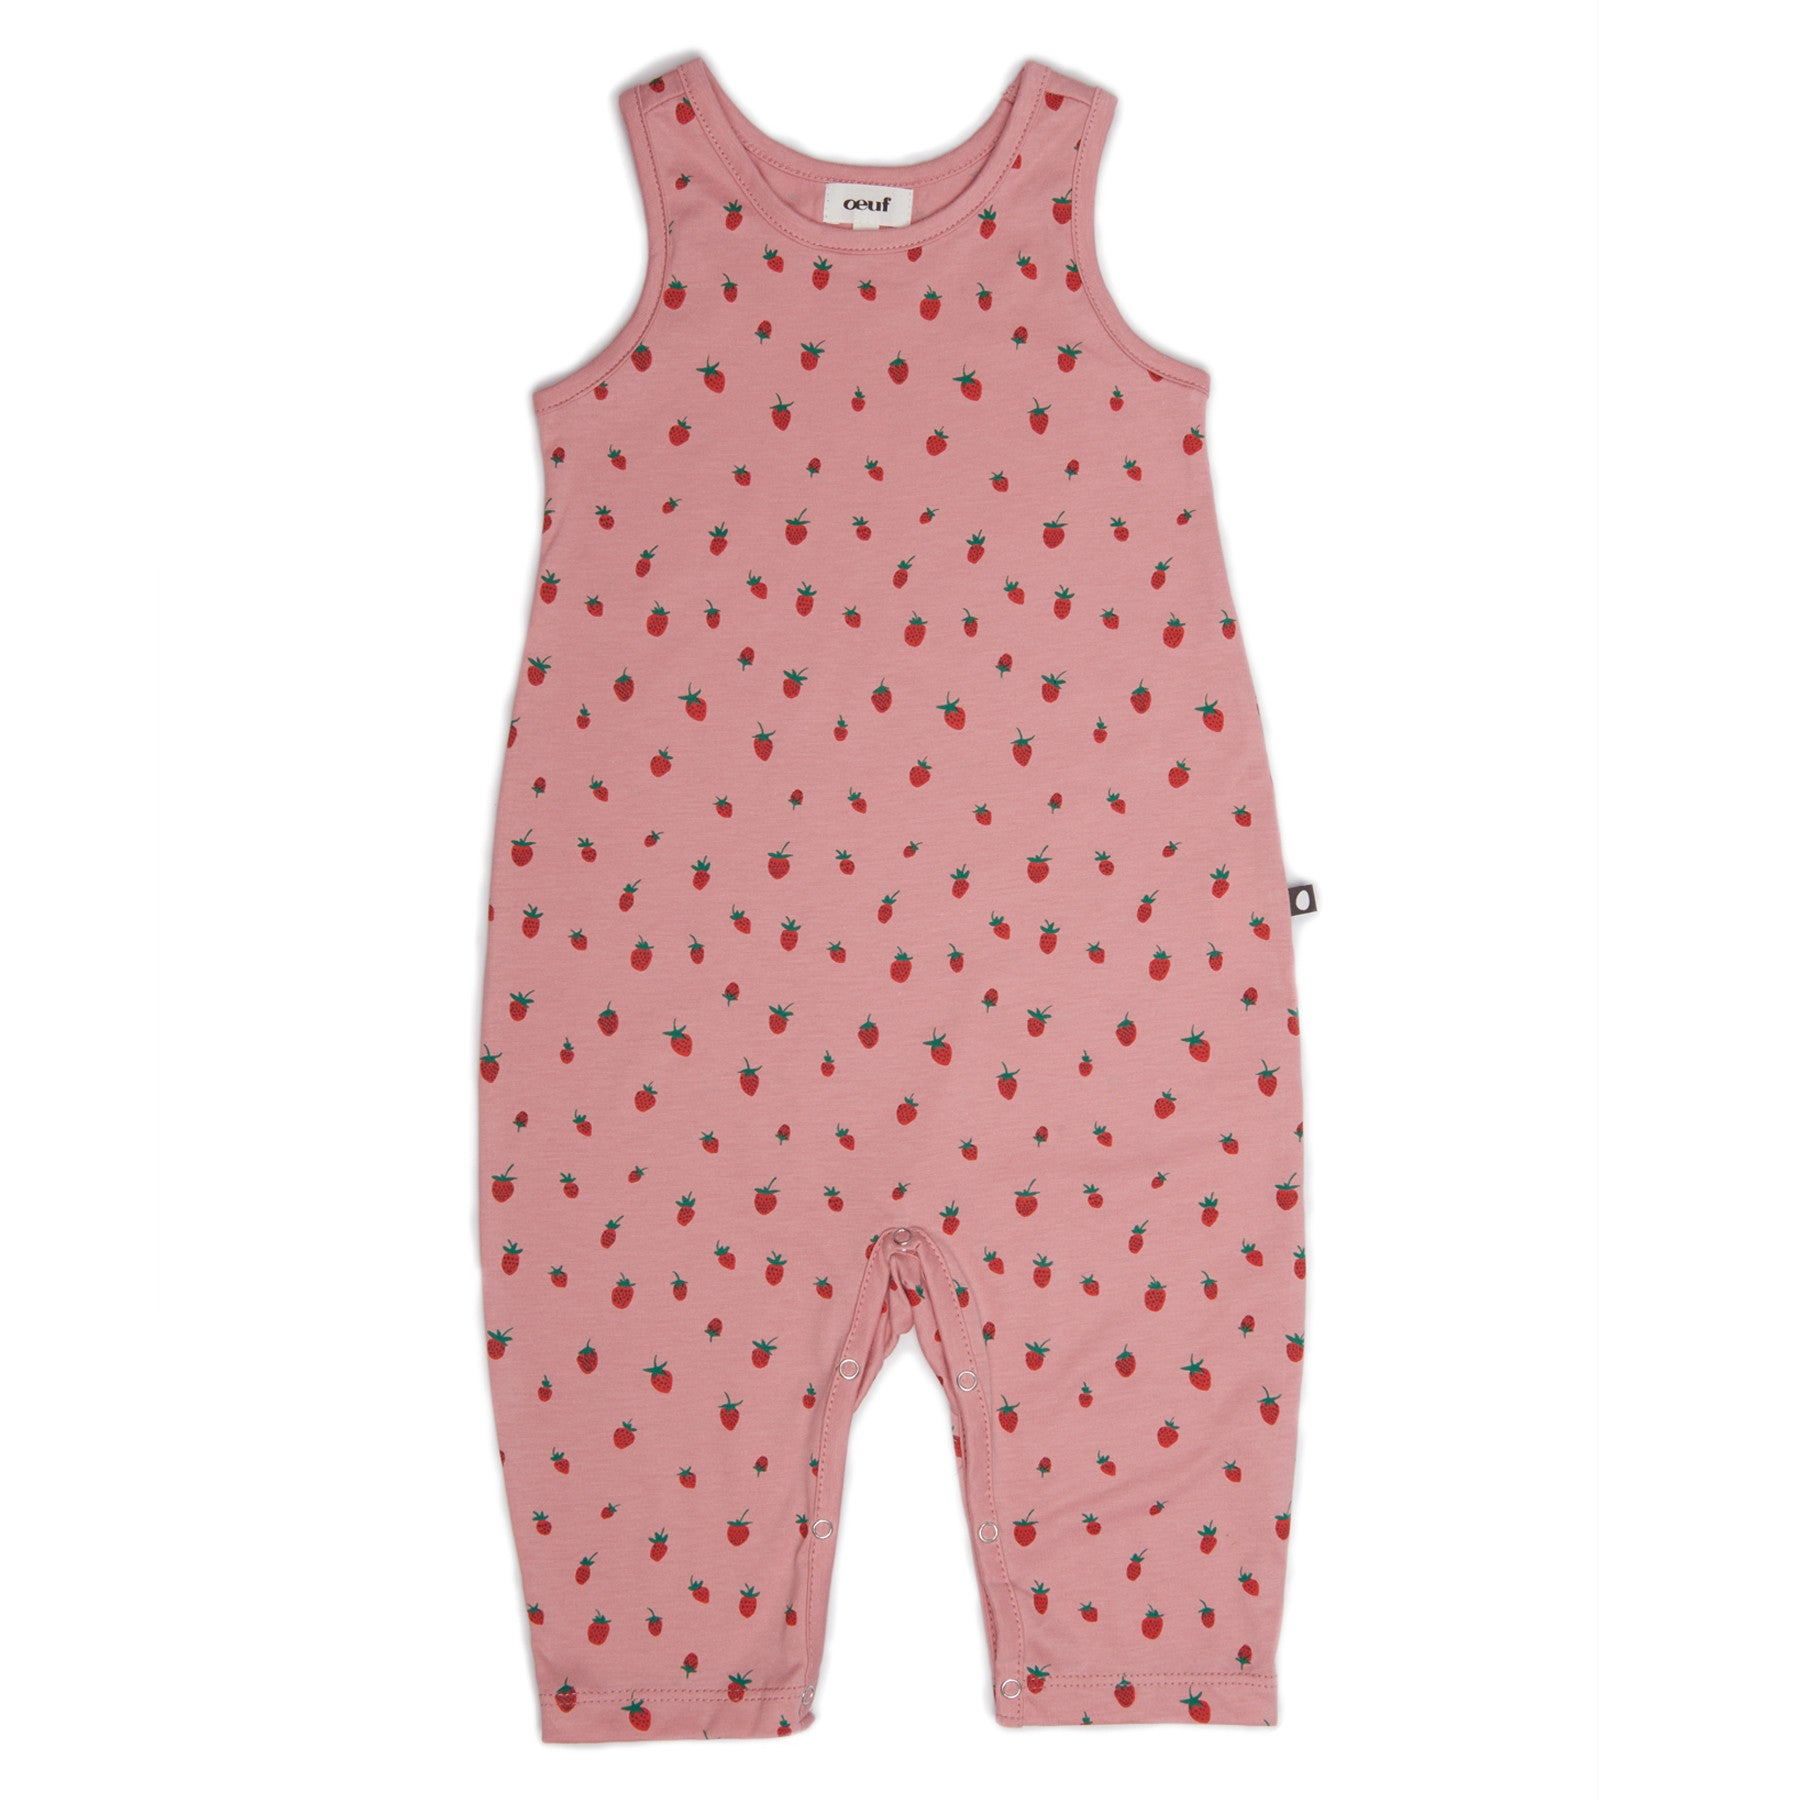 Oeuf Strawberries Sleeveless Jumper - Ladida